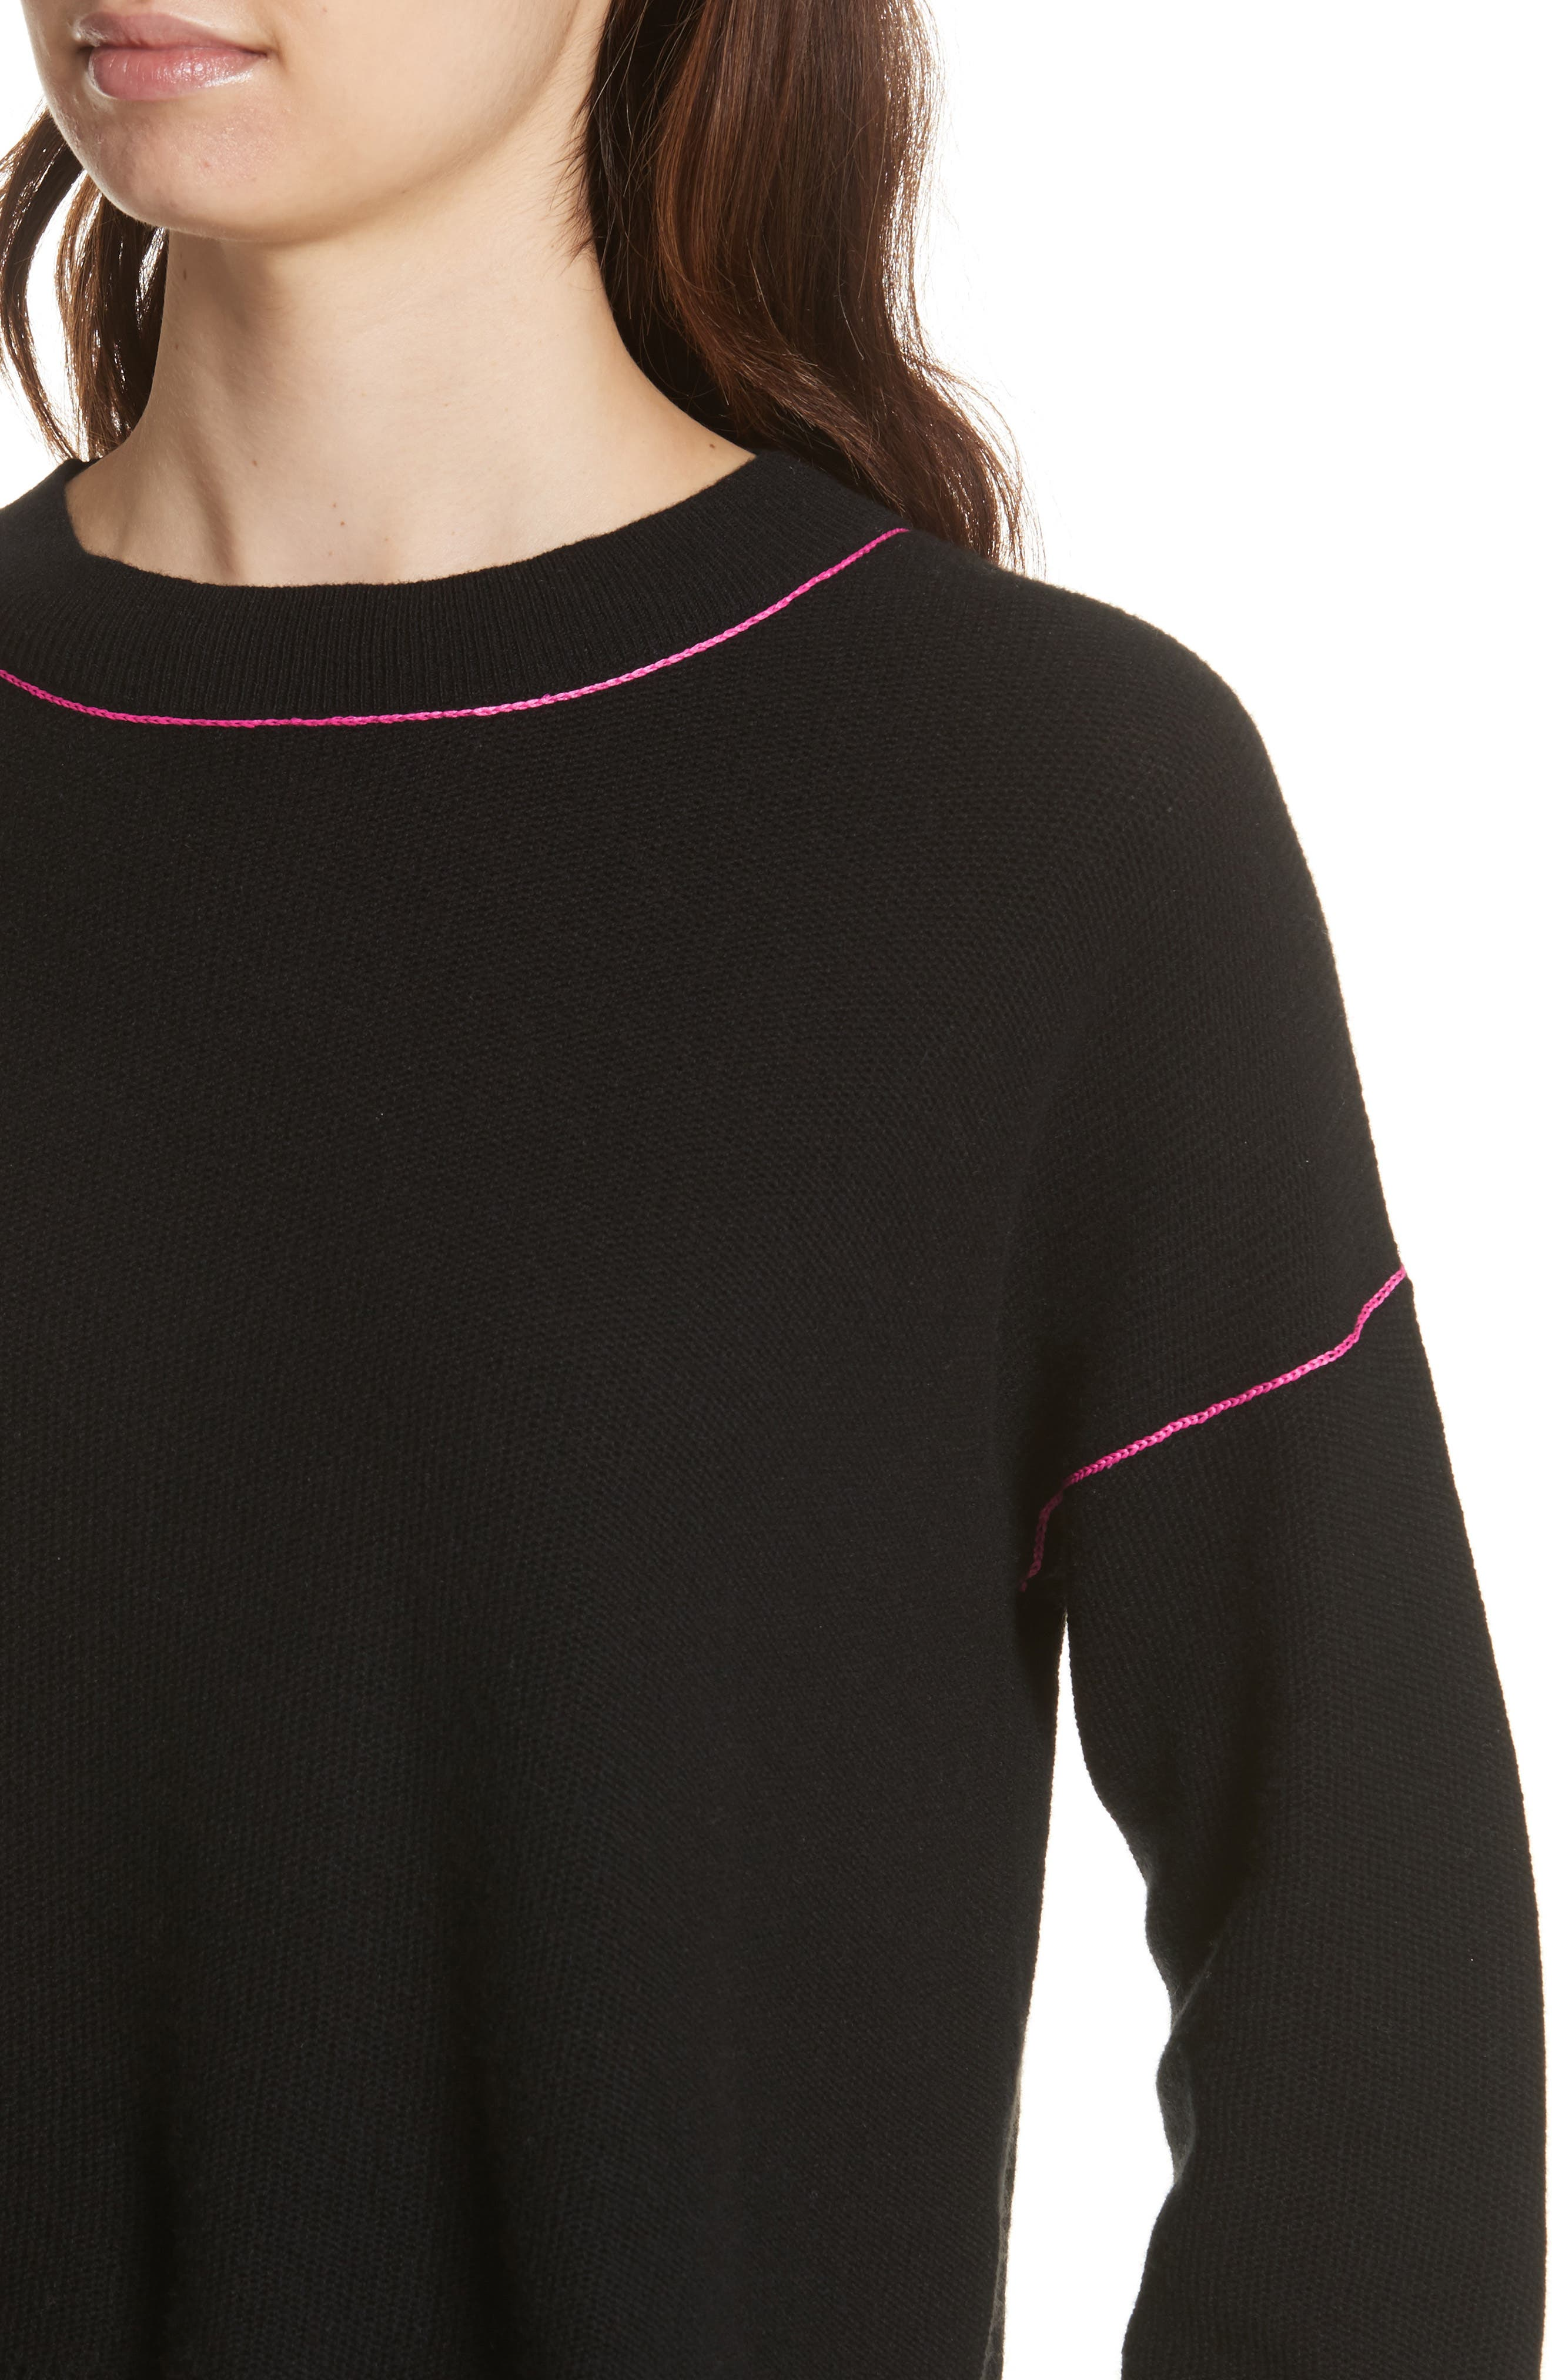 Benin Wool & Cashmere Sweater,                             Alternate thumbnail 4, color,